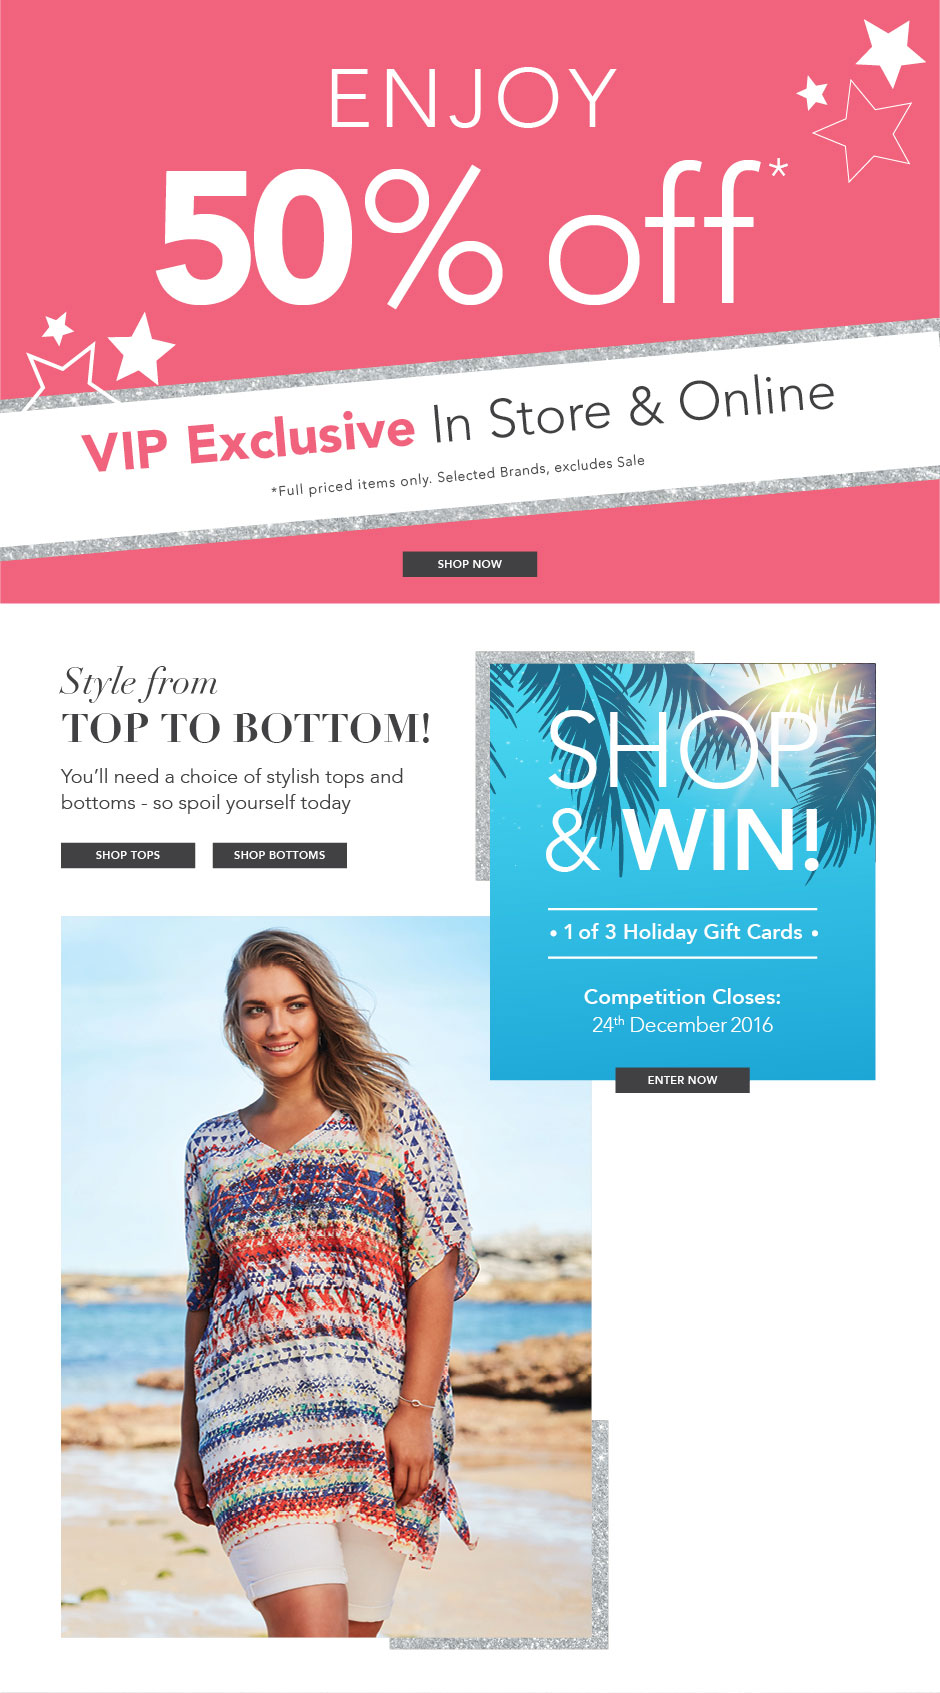 Bargain - 50% OFF - VIP Exclusive - Selected Brands @ Autograph Fashion